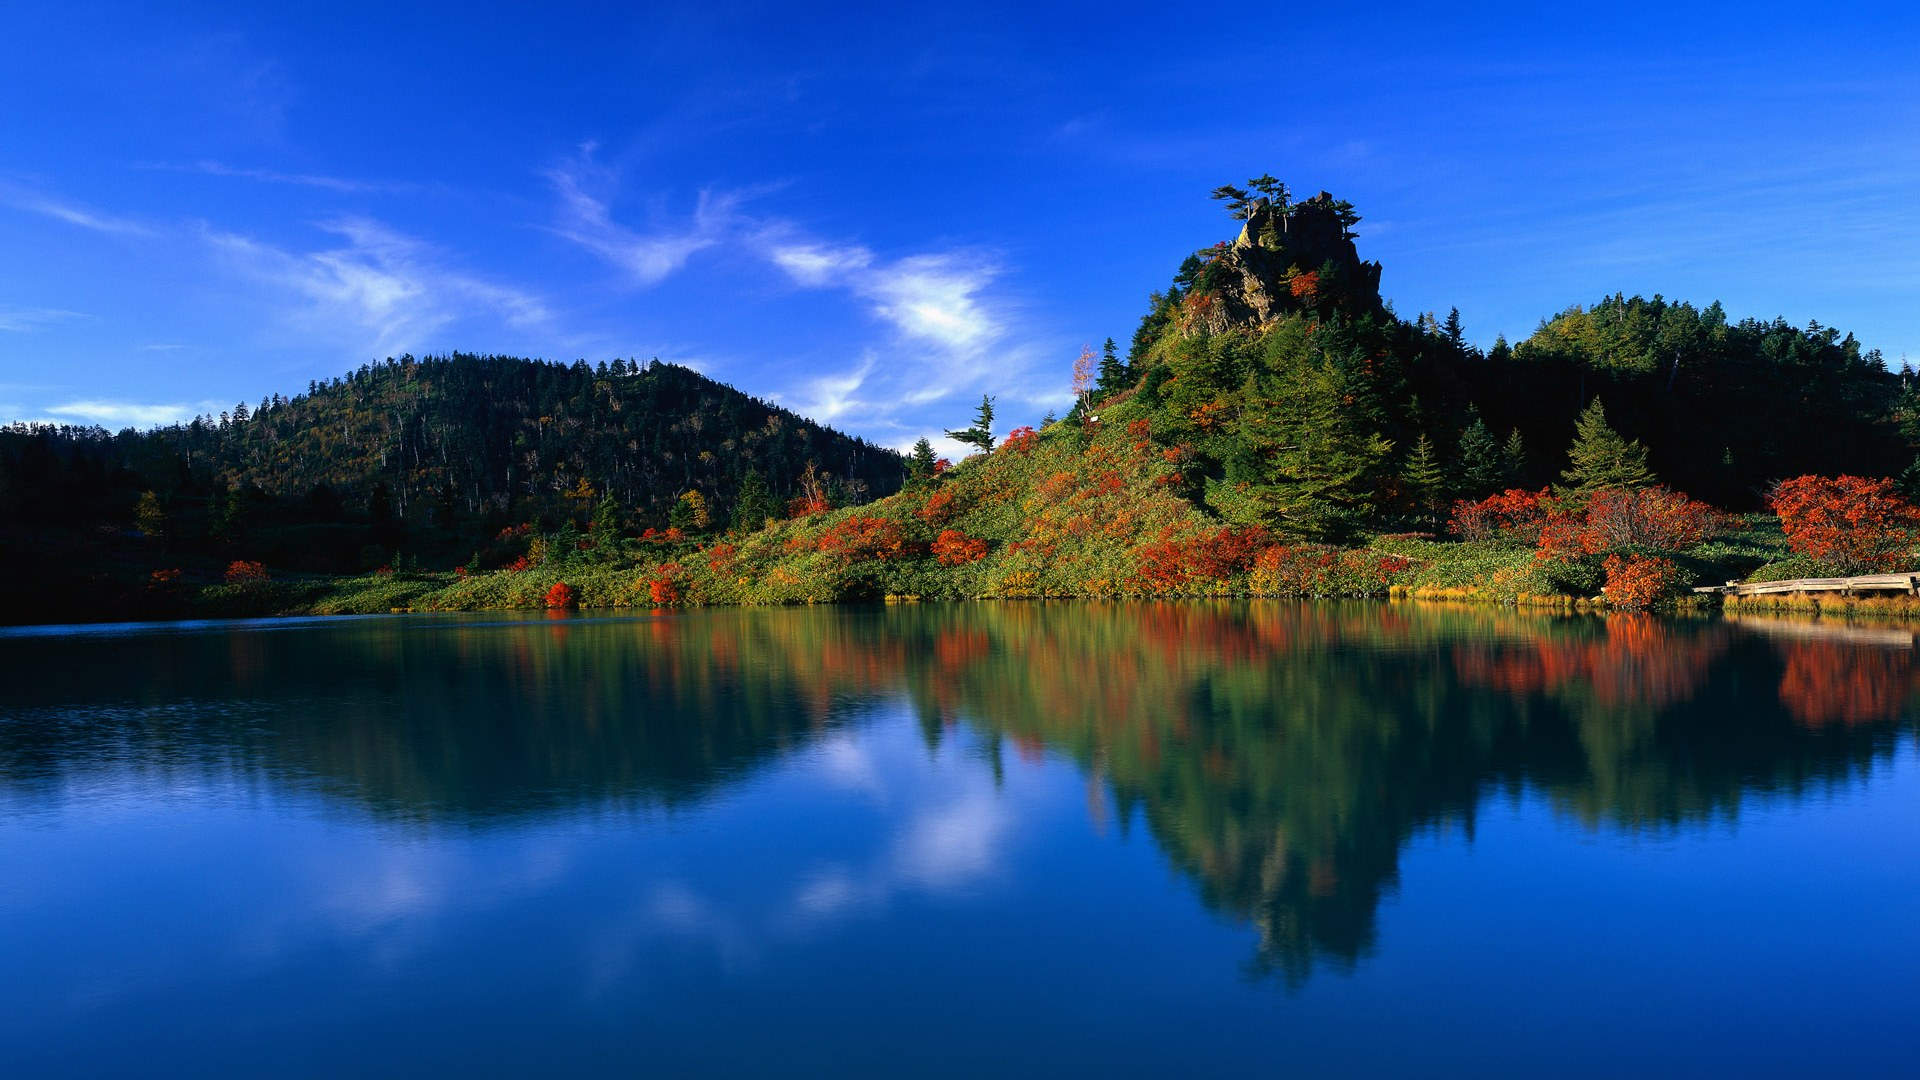 nature widescreen wallpaper wallpapers - photo #25